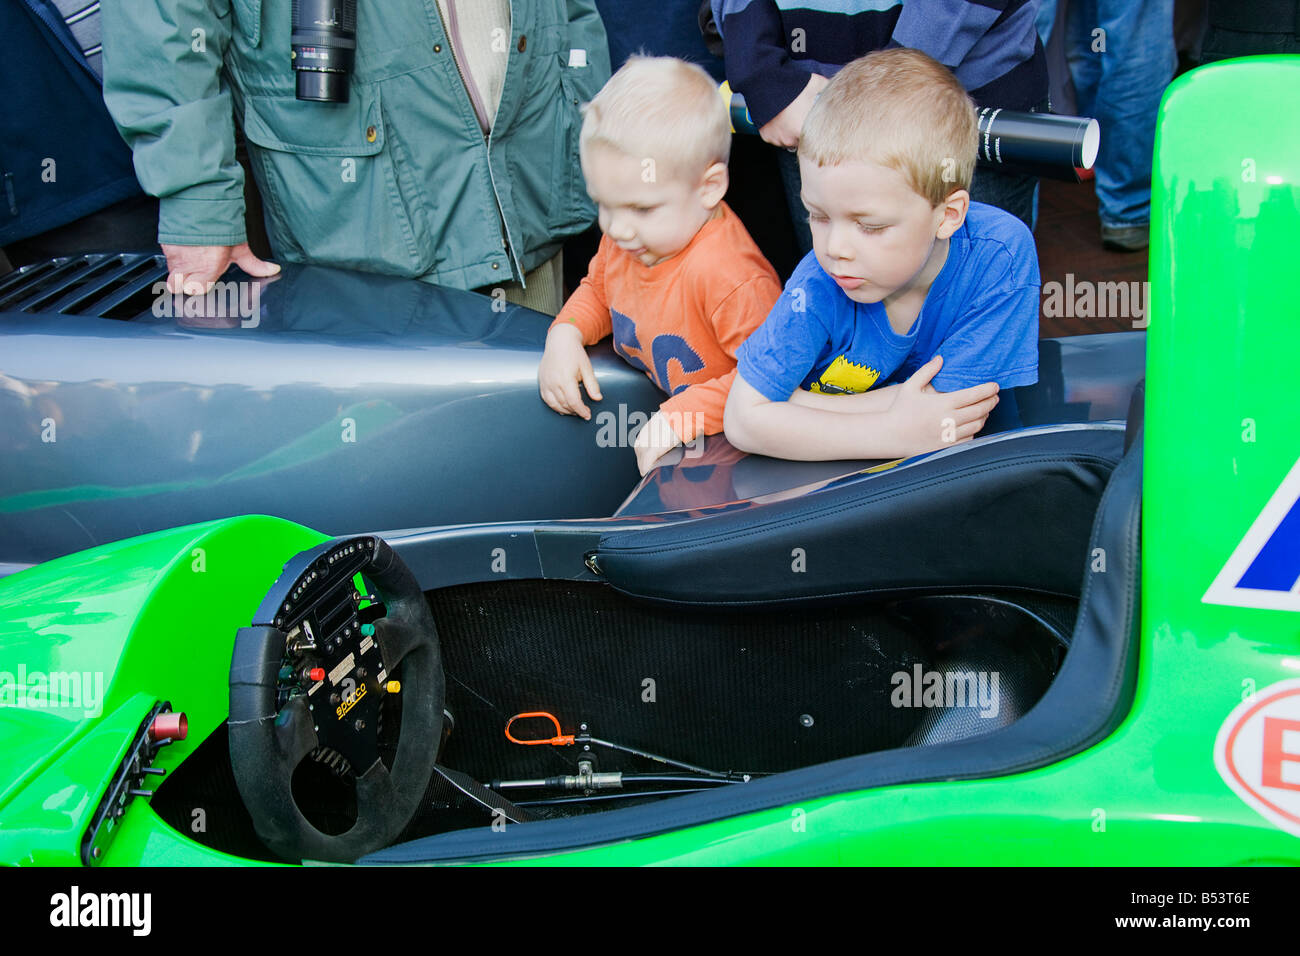 A young car enthusiast studying a Lola car during Lola's 50th Anniversary show in Huntingdon. - Stock Image